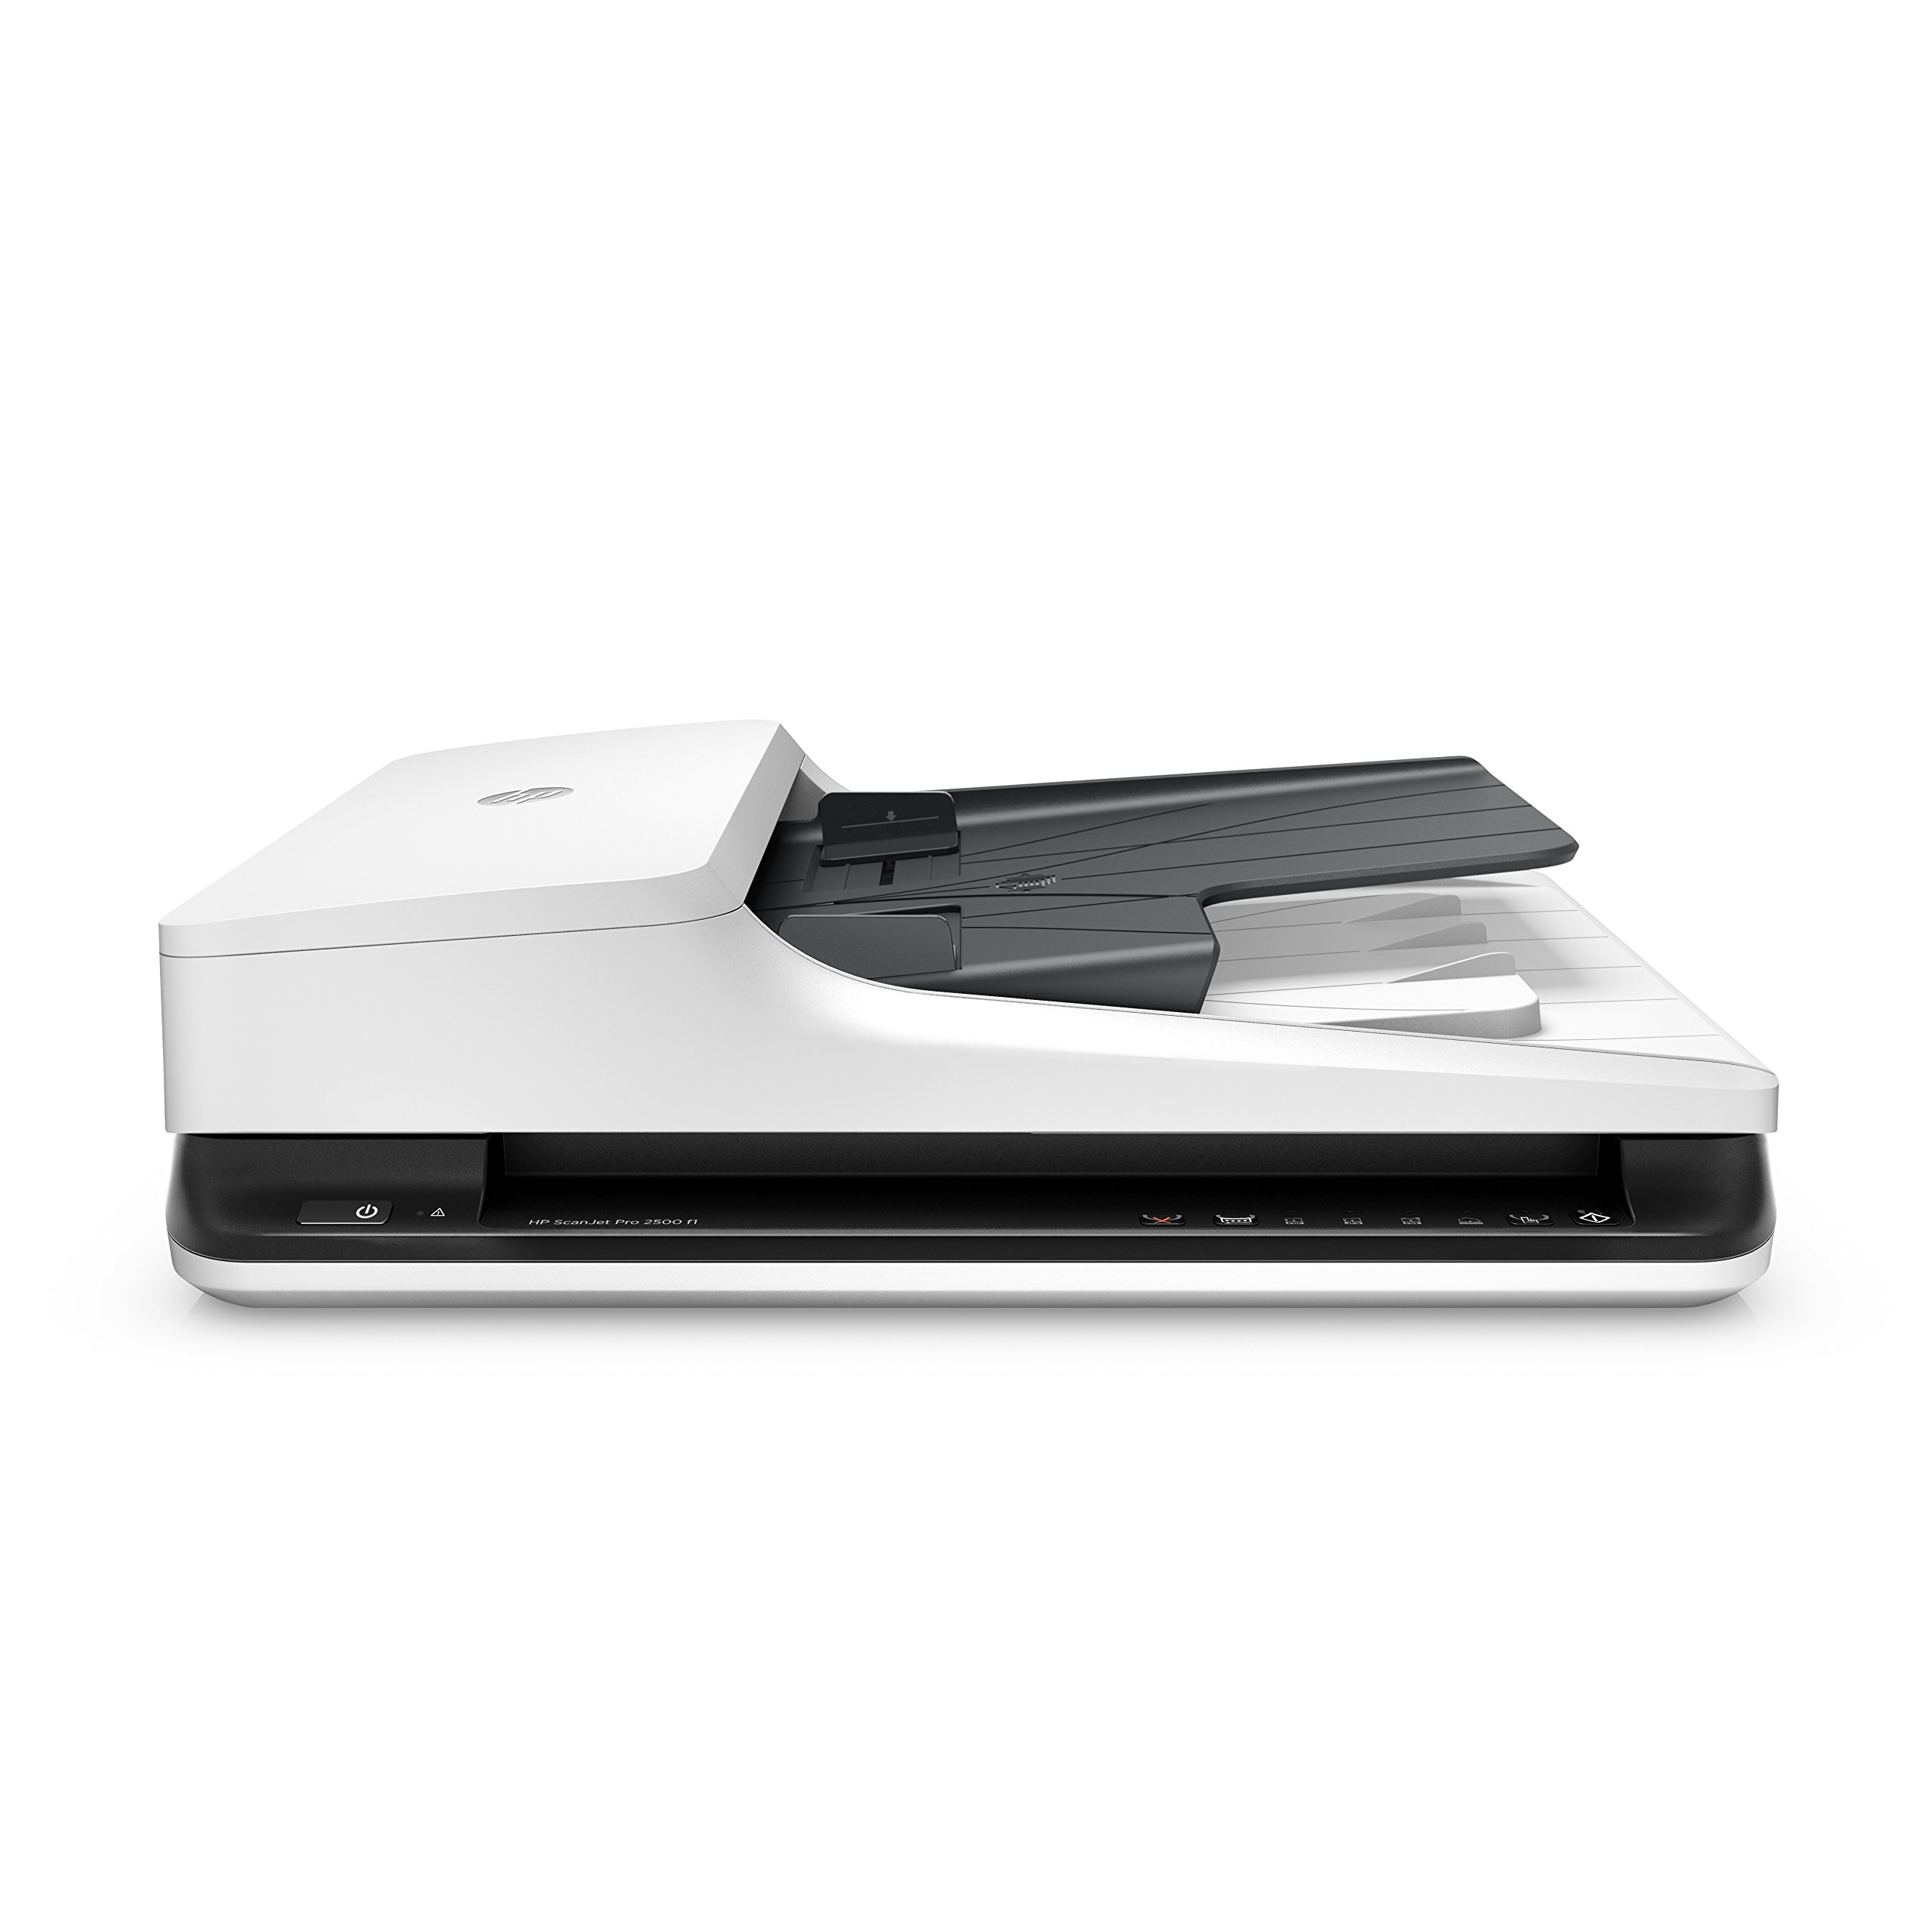 HP ScanJet Pro 2500 f1 Flatbed OCR Scanner by HP